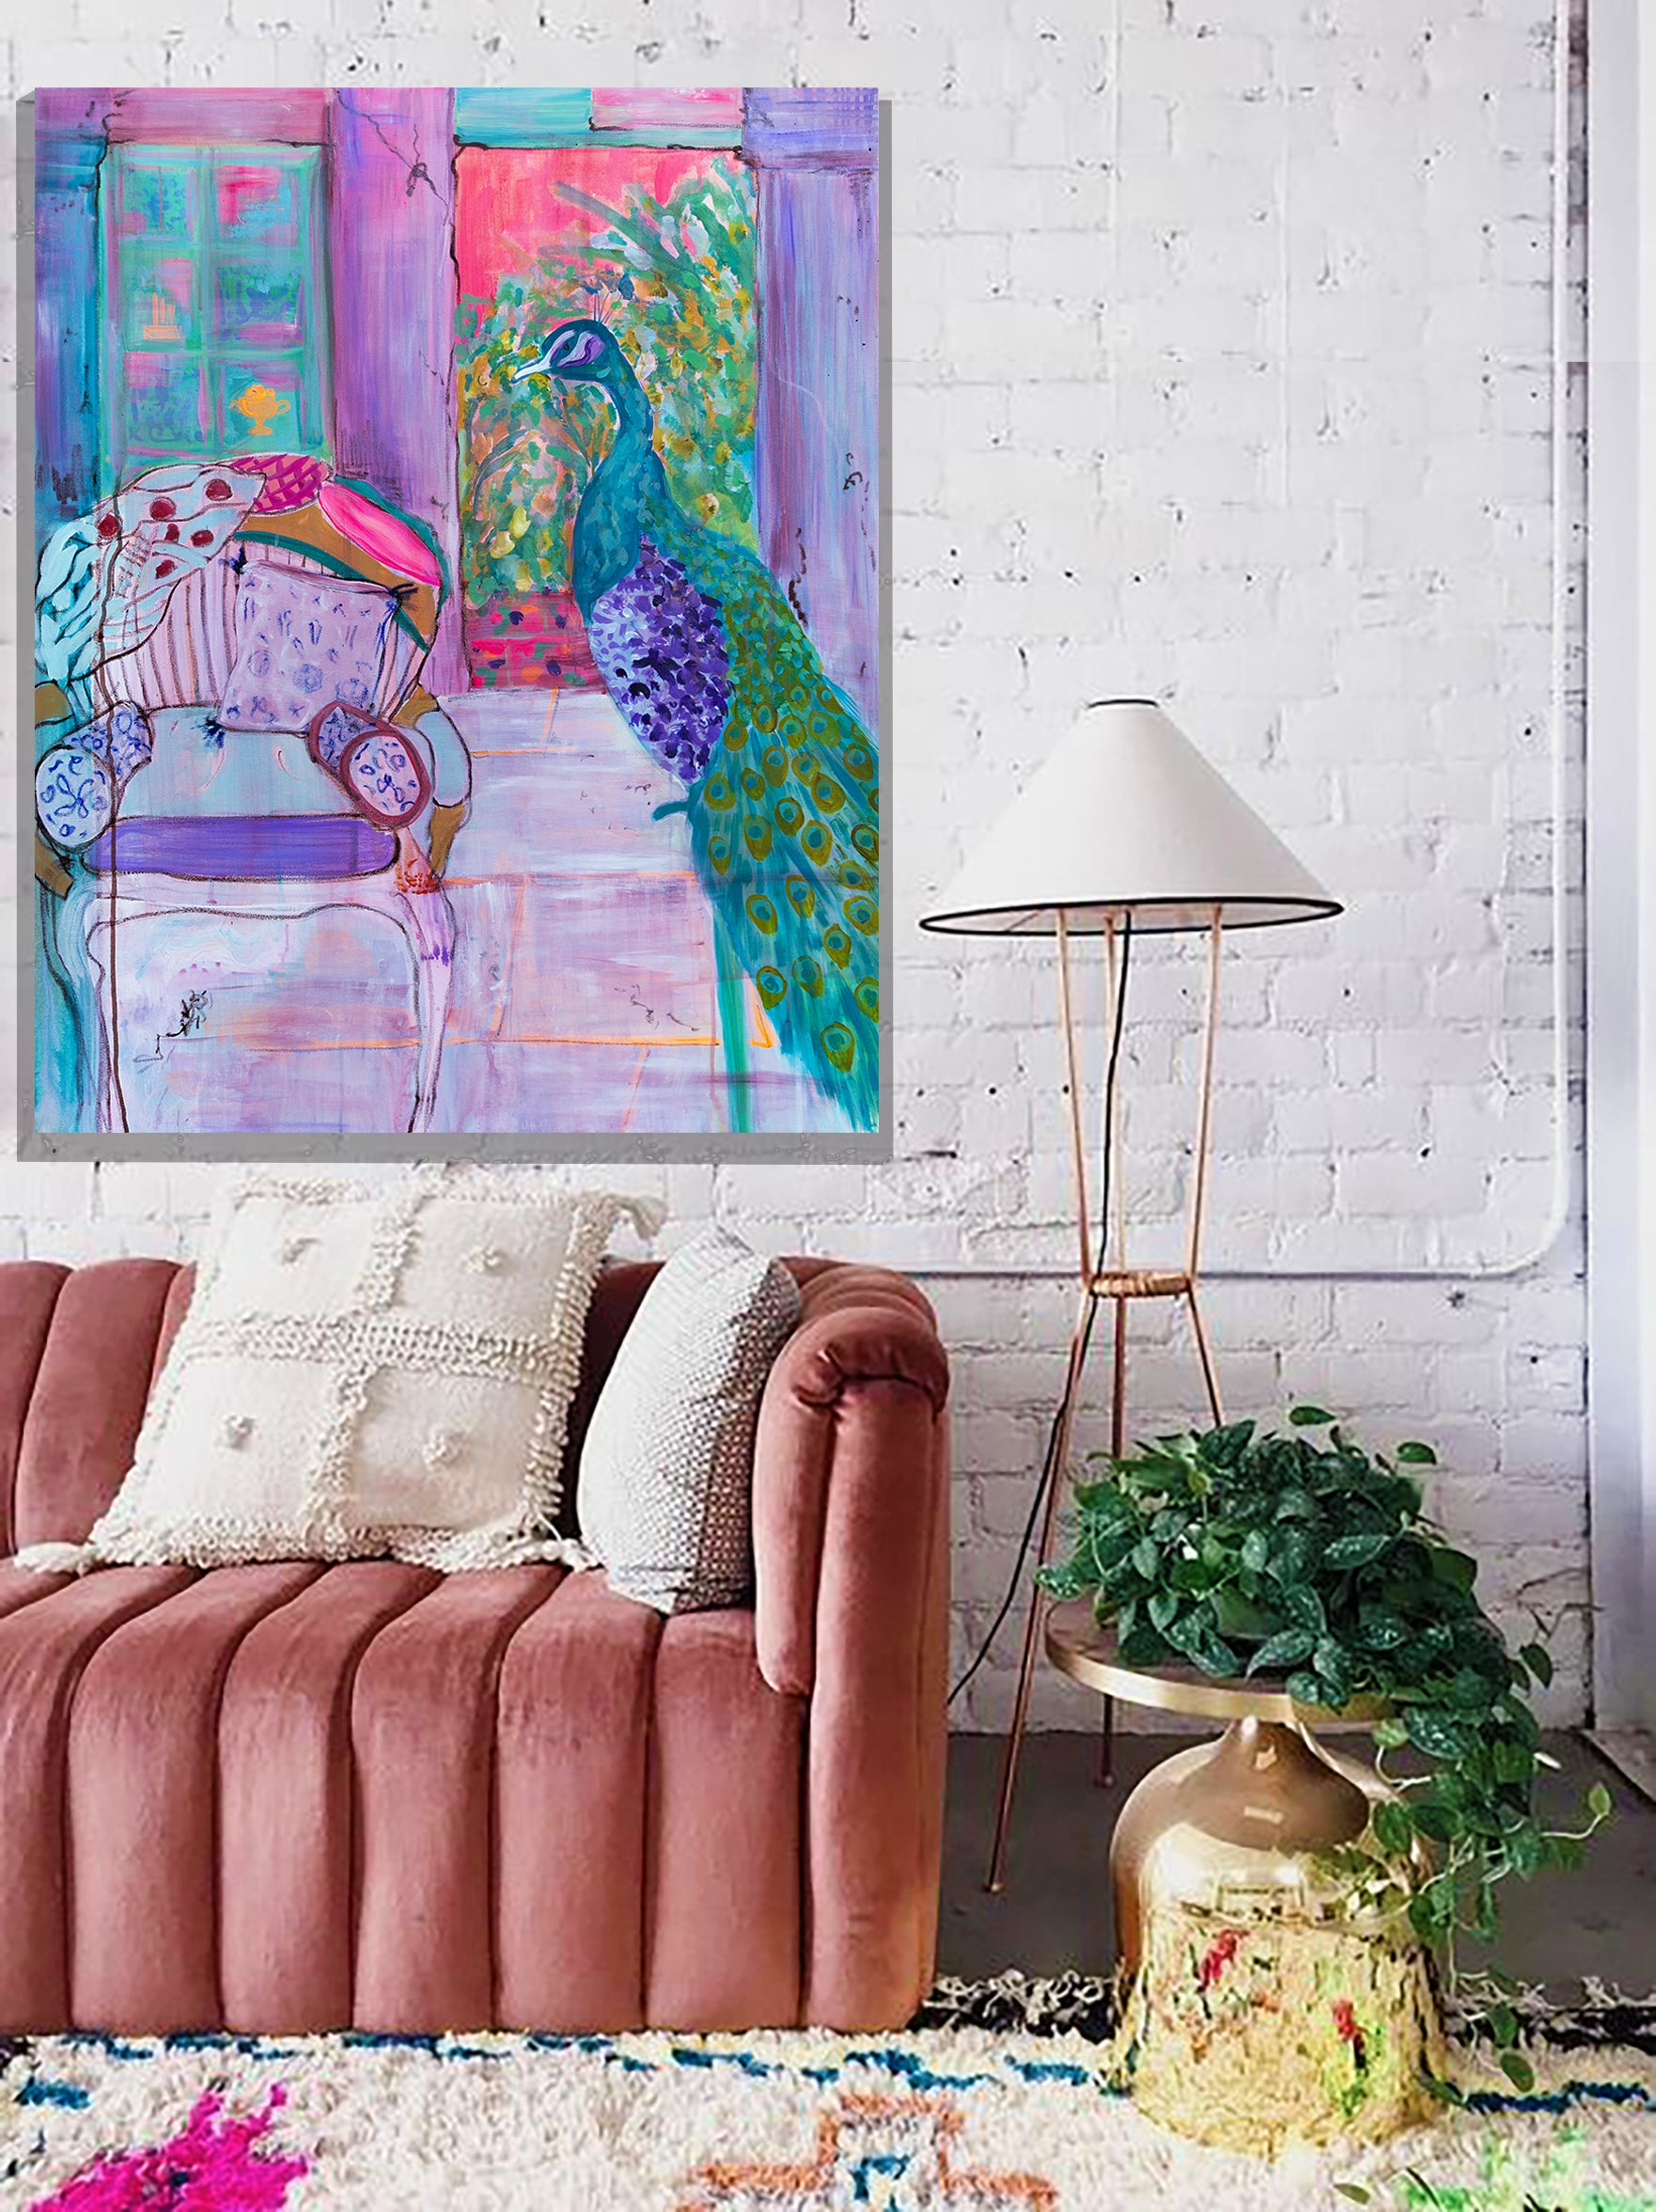 """Peacock and chair"" Painting - Davina Shefet Art Store"